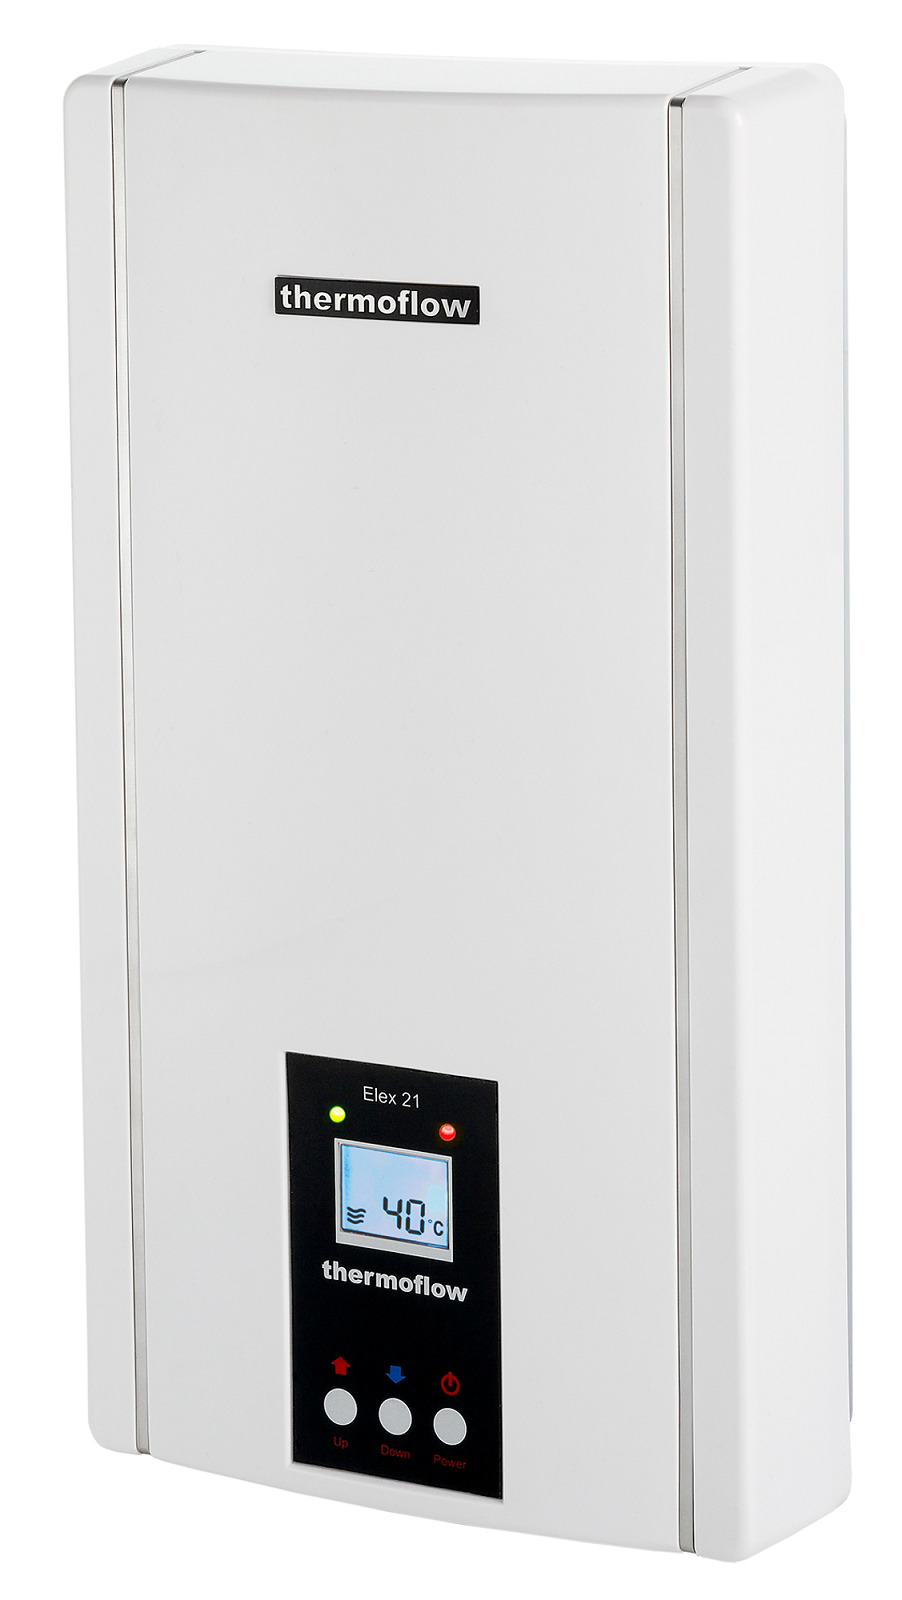 thermoflow durchlauferhitzer elektronisch 21 kw elex 21 boiler neu eur 184 21 picclick fr. Black Bedroom Furniture Sets. Home Design Ideas